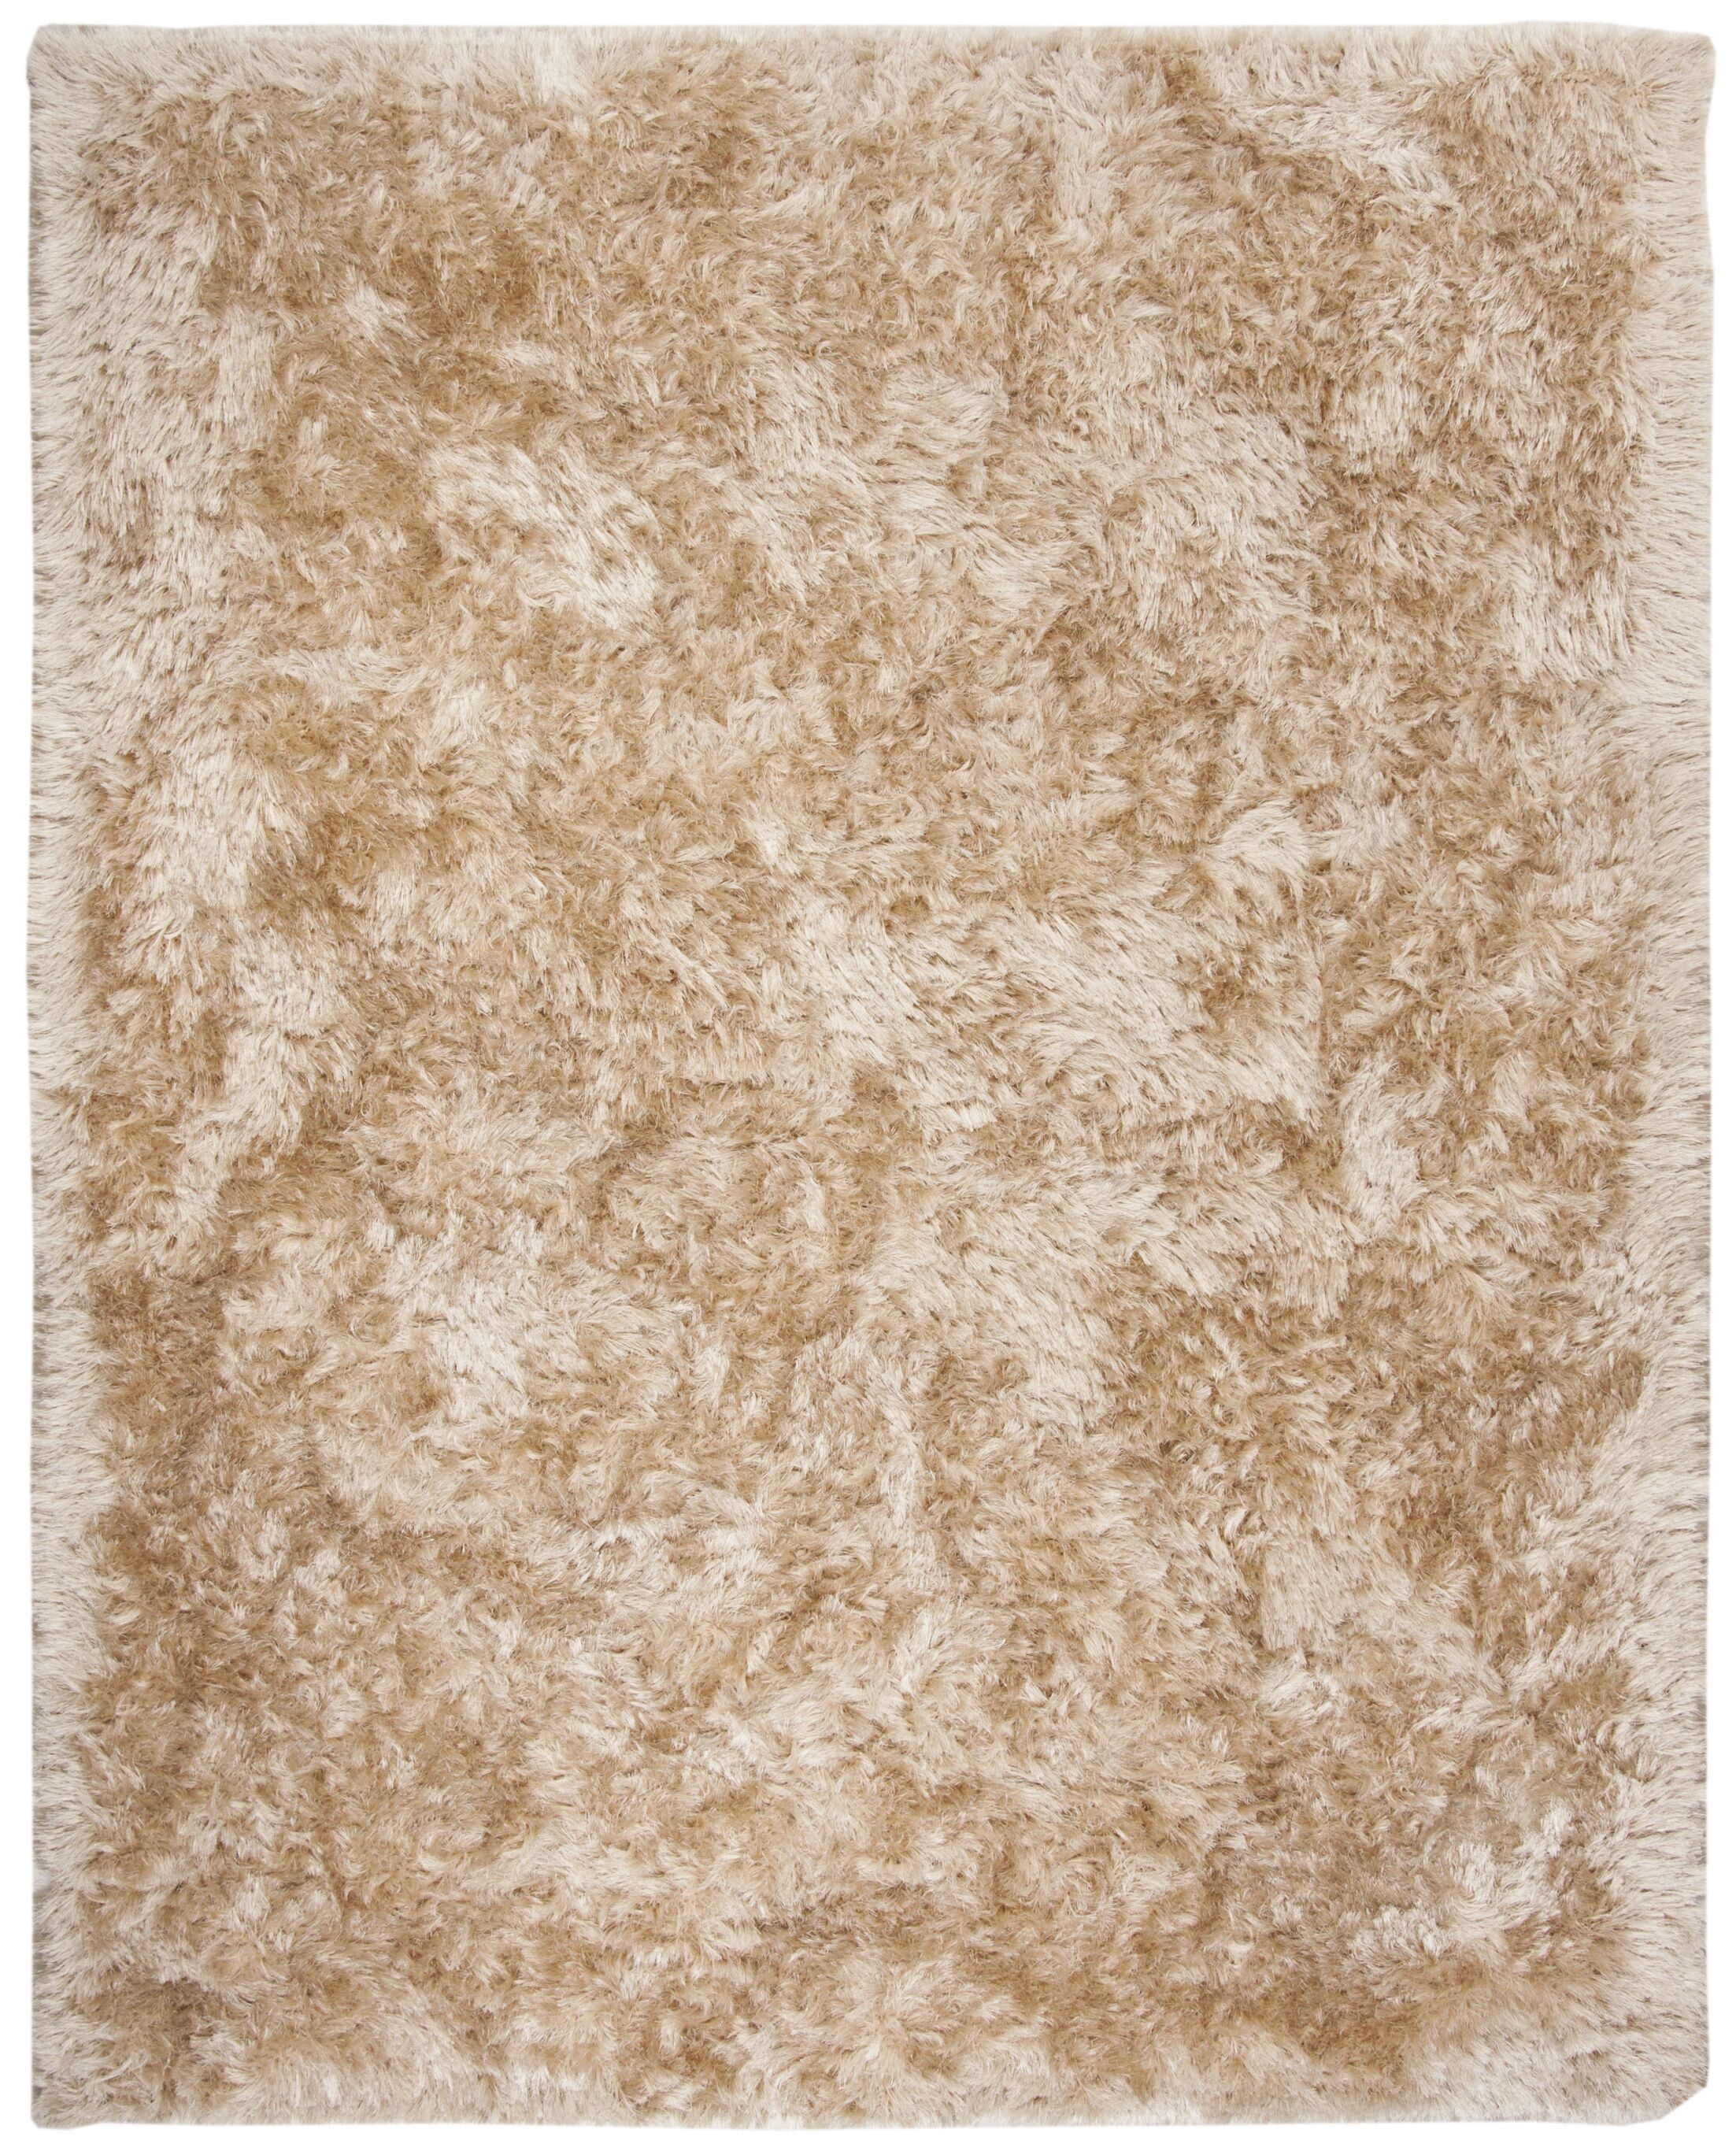 Moultrie Hand-Tufted Beige Area Rug Rug Size: Rectangle 8' X 10'